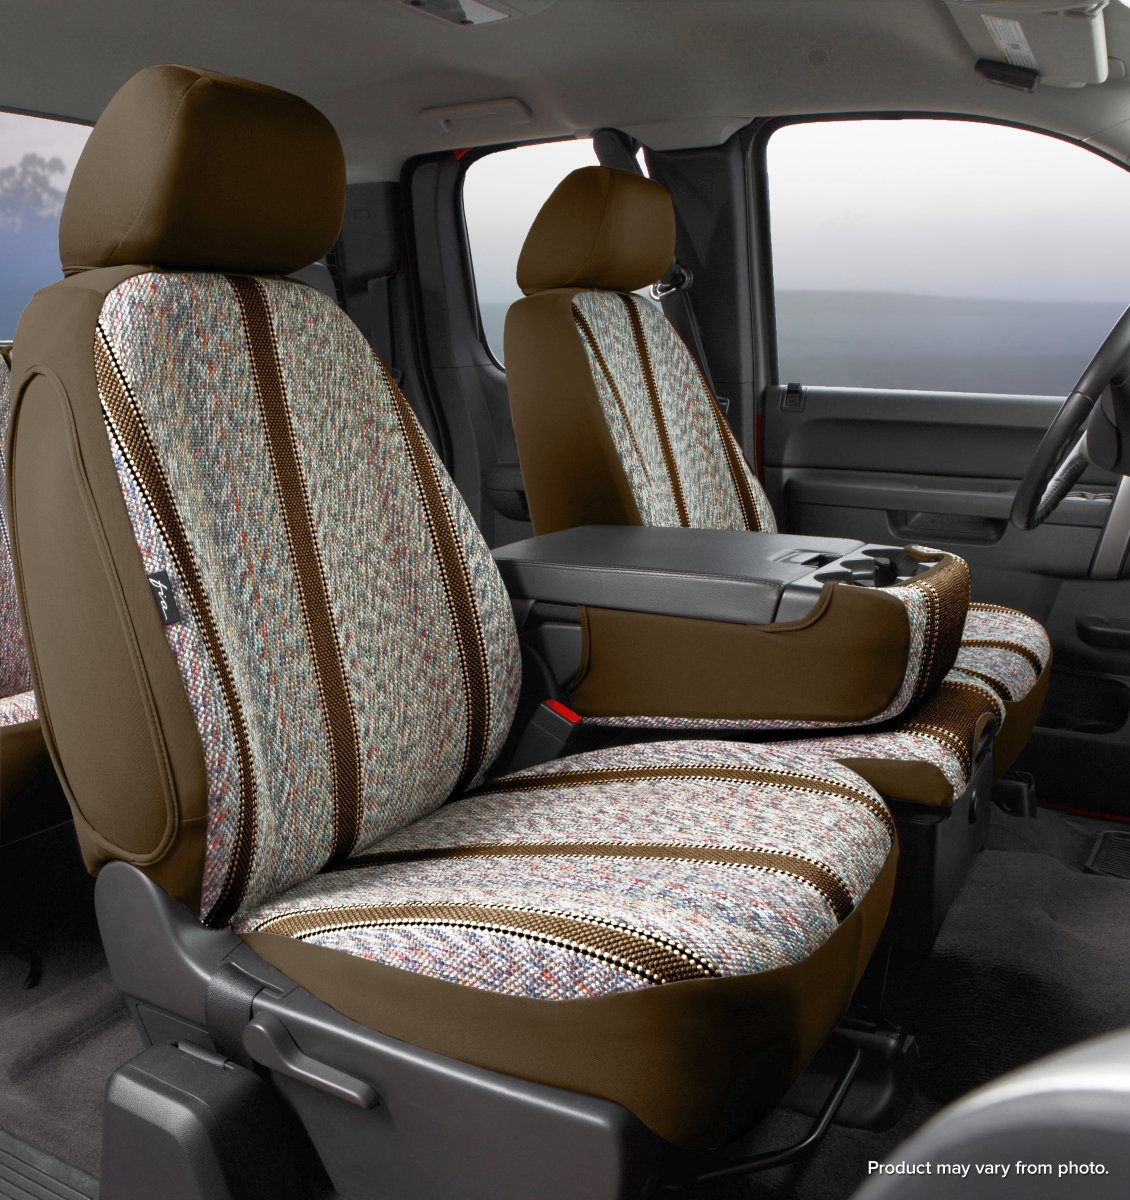 Fia Wrangler Series 1st Row Brown Seat Covers - Fia TR48-10 BROWN